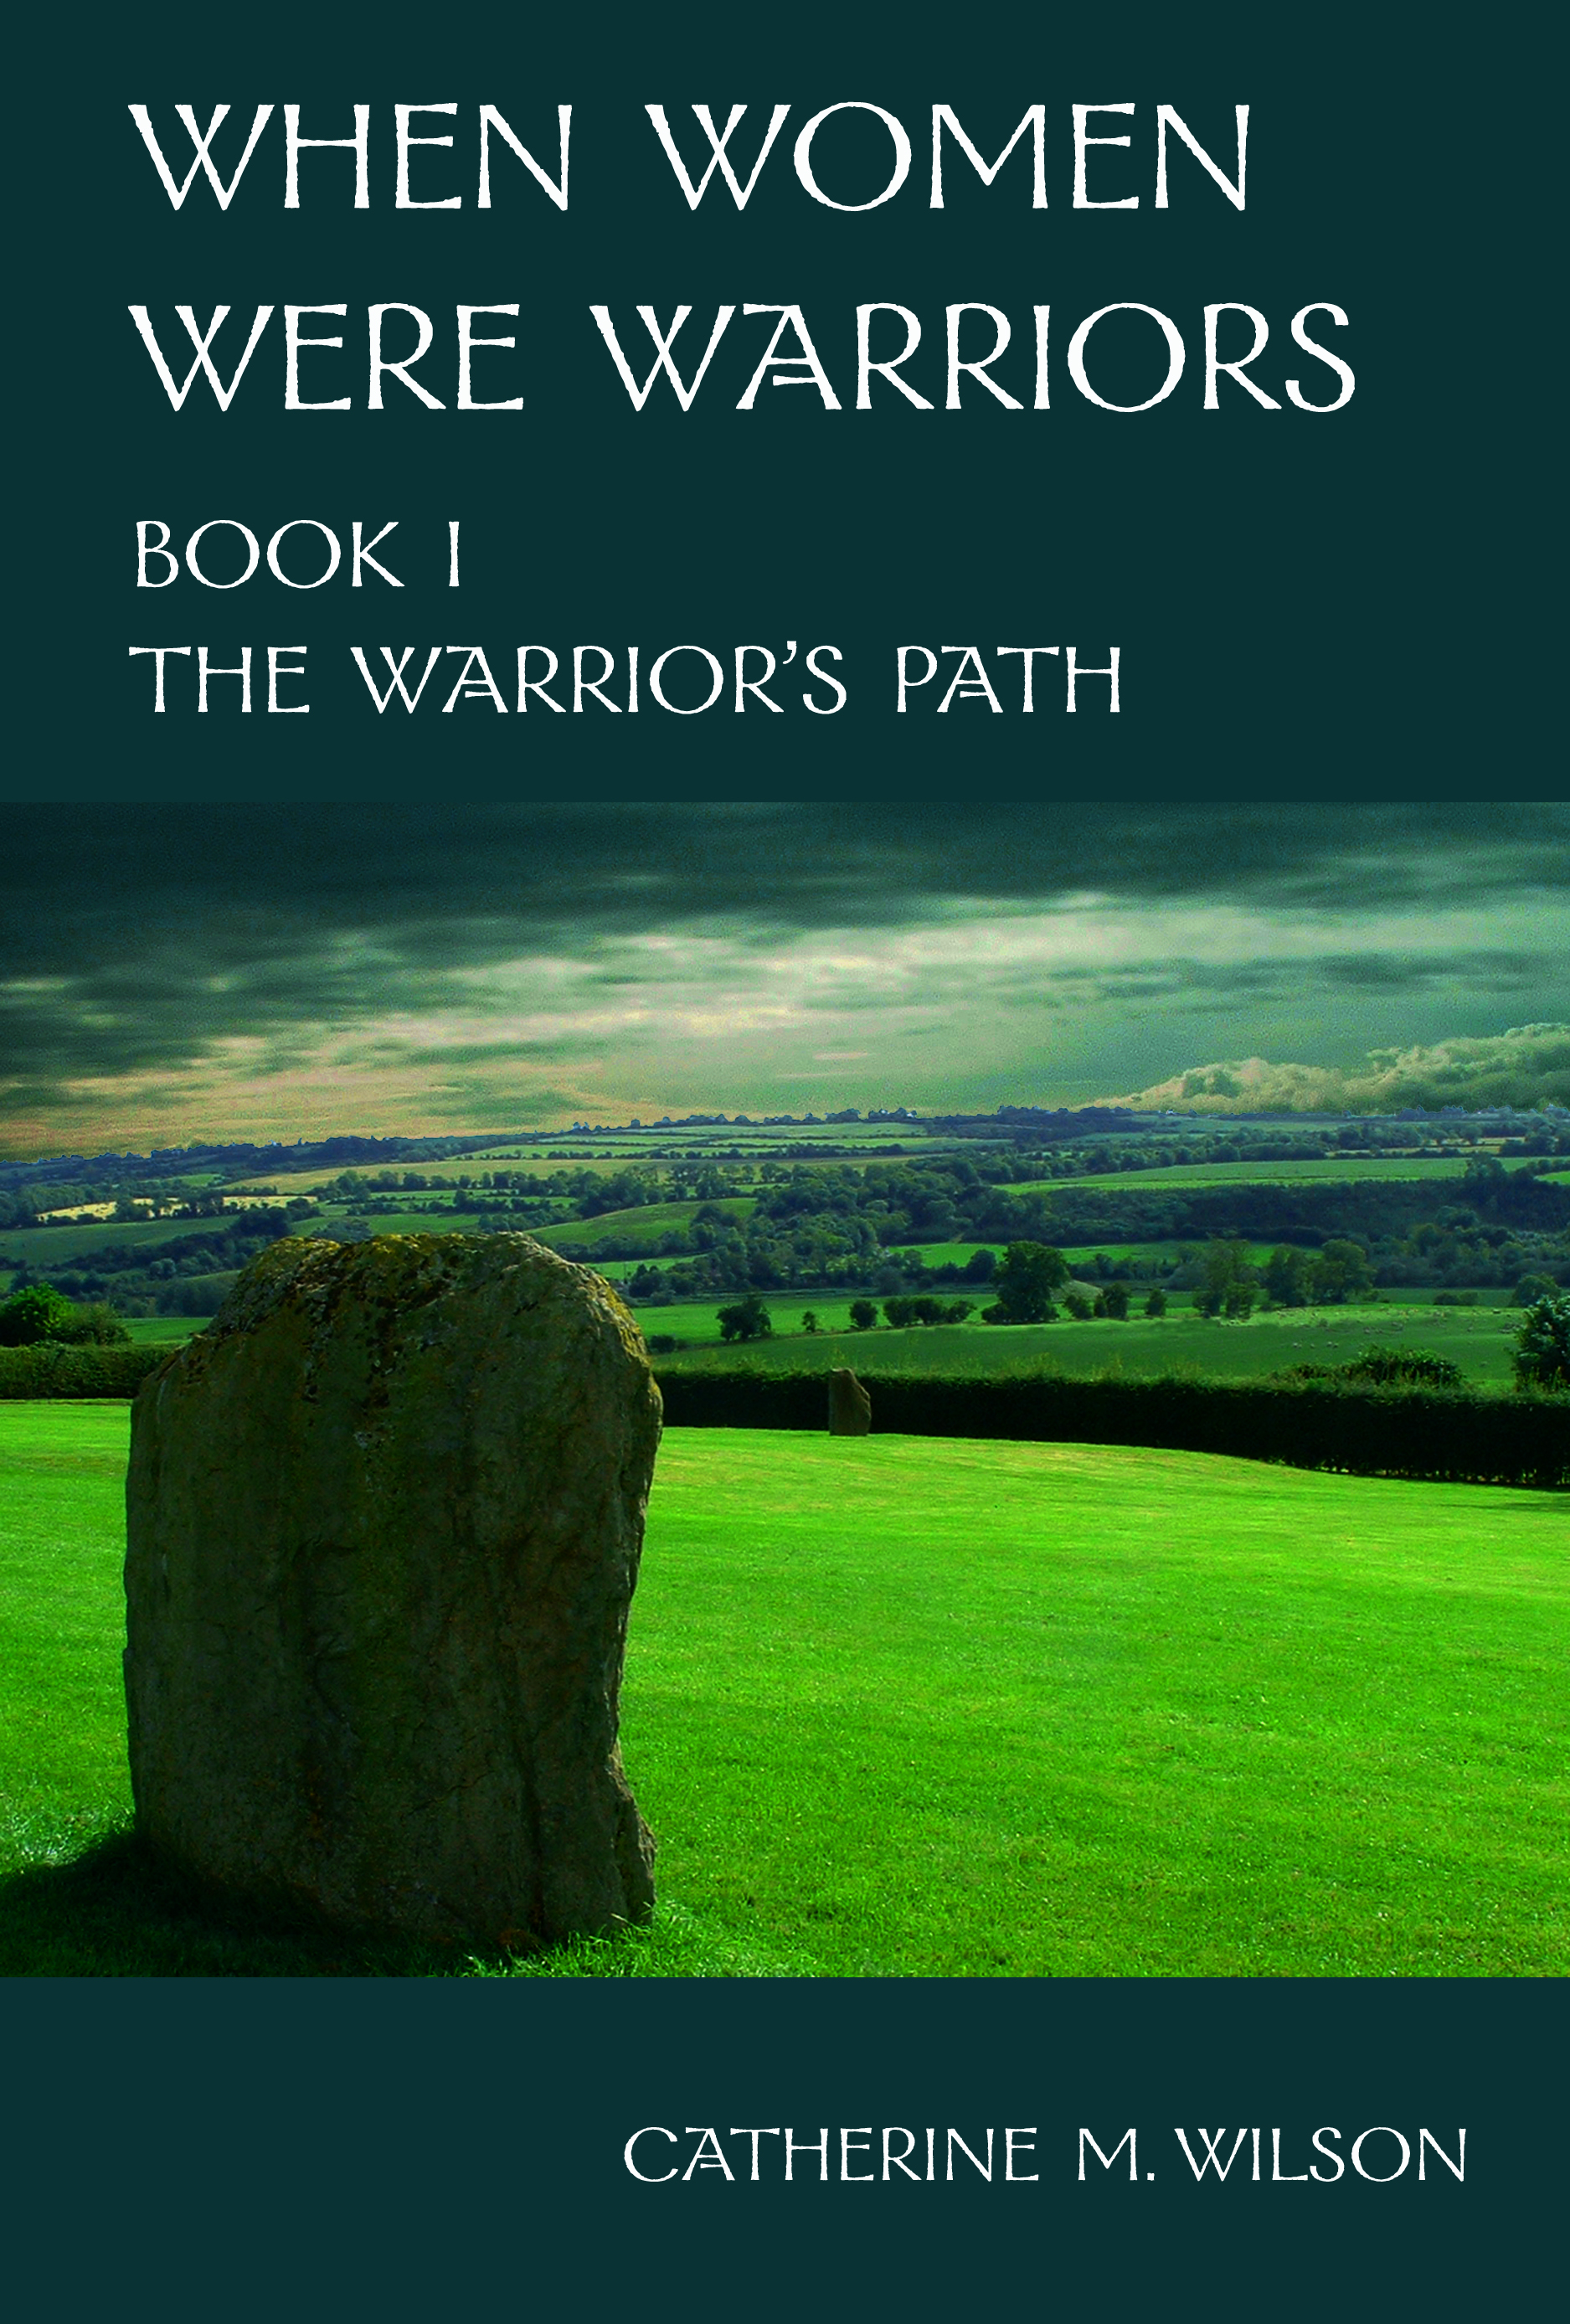 When Women Were Warriors Book I: The Warrior's Path (sst-xxxv)